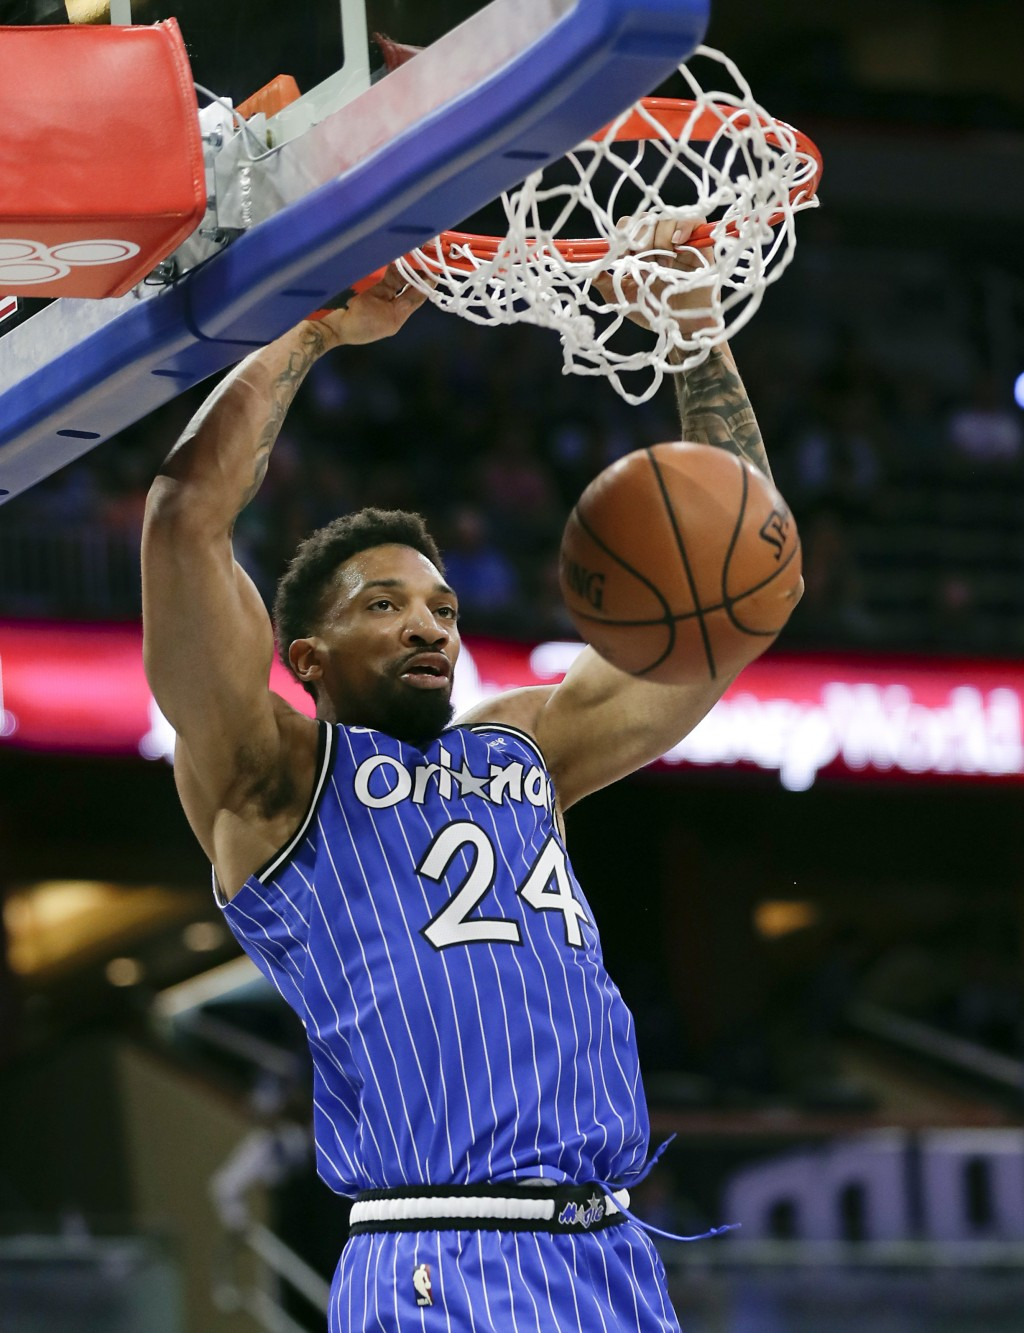 Orlando Magic's Khem Birch makes an uncontested dunk against the Cleveland Cavaliers during the first half of an NBA basketball game, Thursday, March